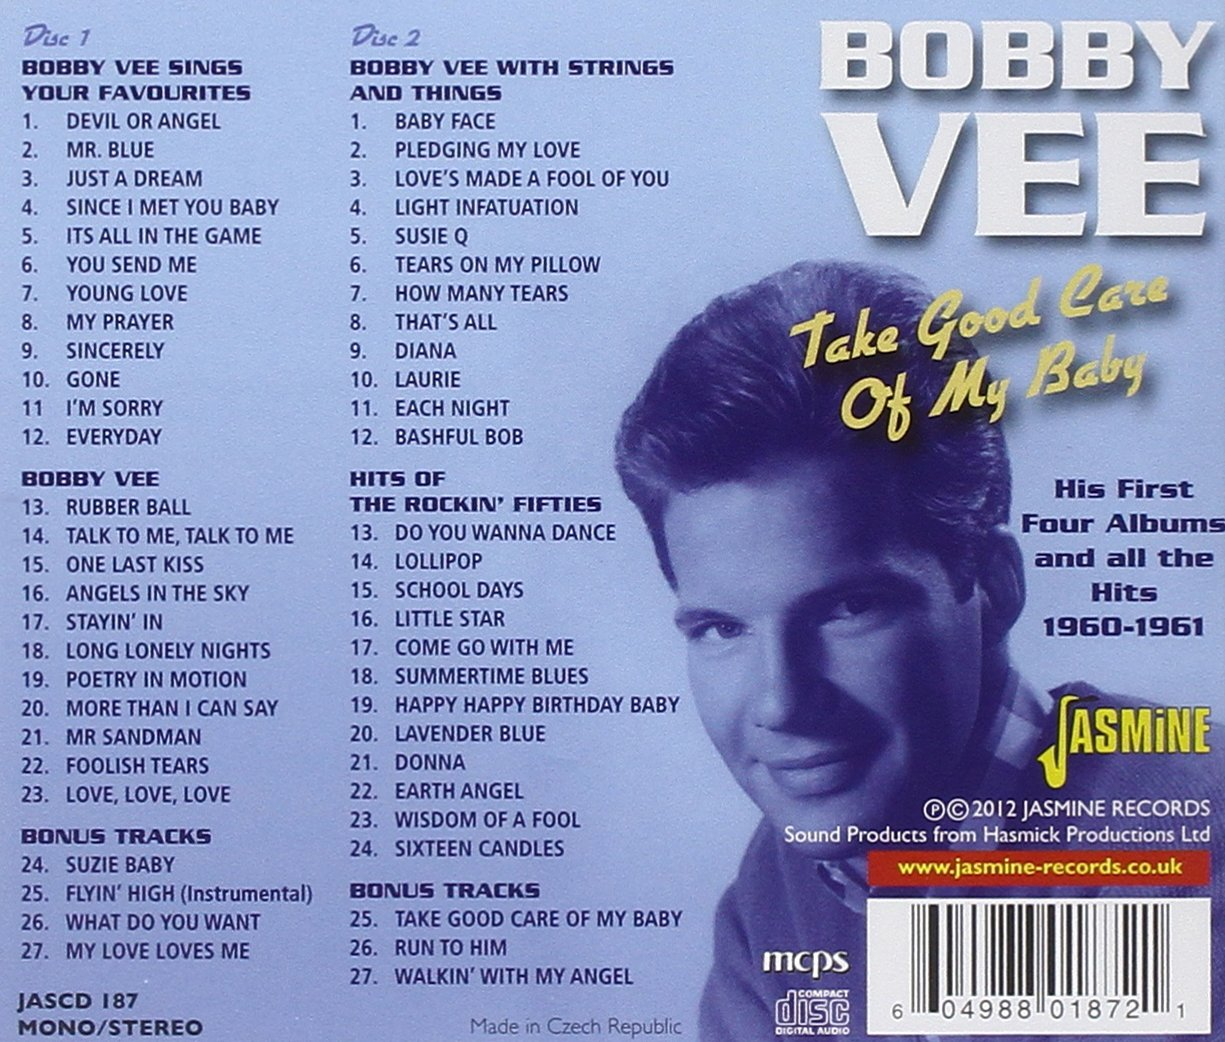 Bobby Vee - Take Good Care Of My Baby - His First Four Albums And ...